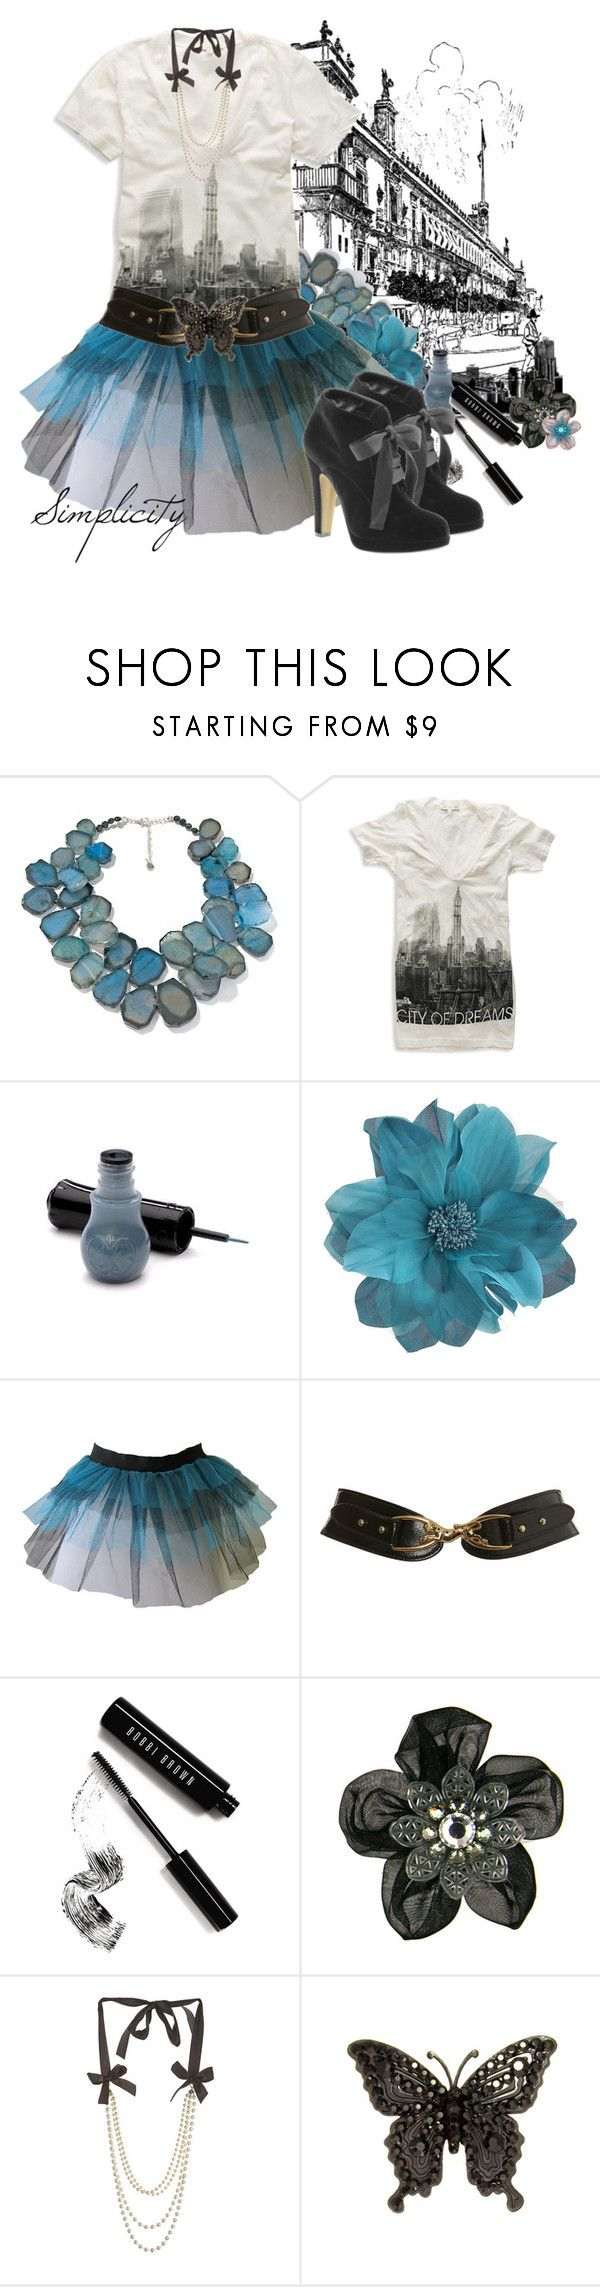 """""""Simplicity"""" by tshirtjunkie ❤ liked on Polyvore featuring Barse, Forever 21, Anna Sui, Miss Selfridge, Bobbi Brown Cosmetics, Moschino Cheap & Chic, Tarina Tarantino, boots, tshirt and tutu"""